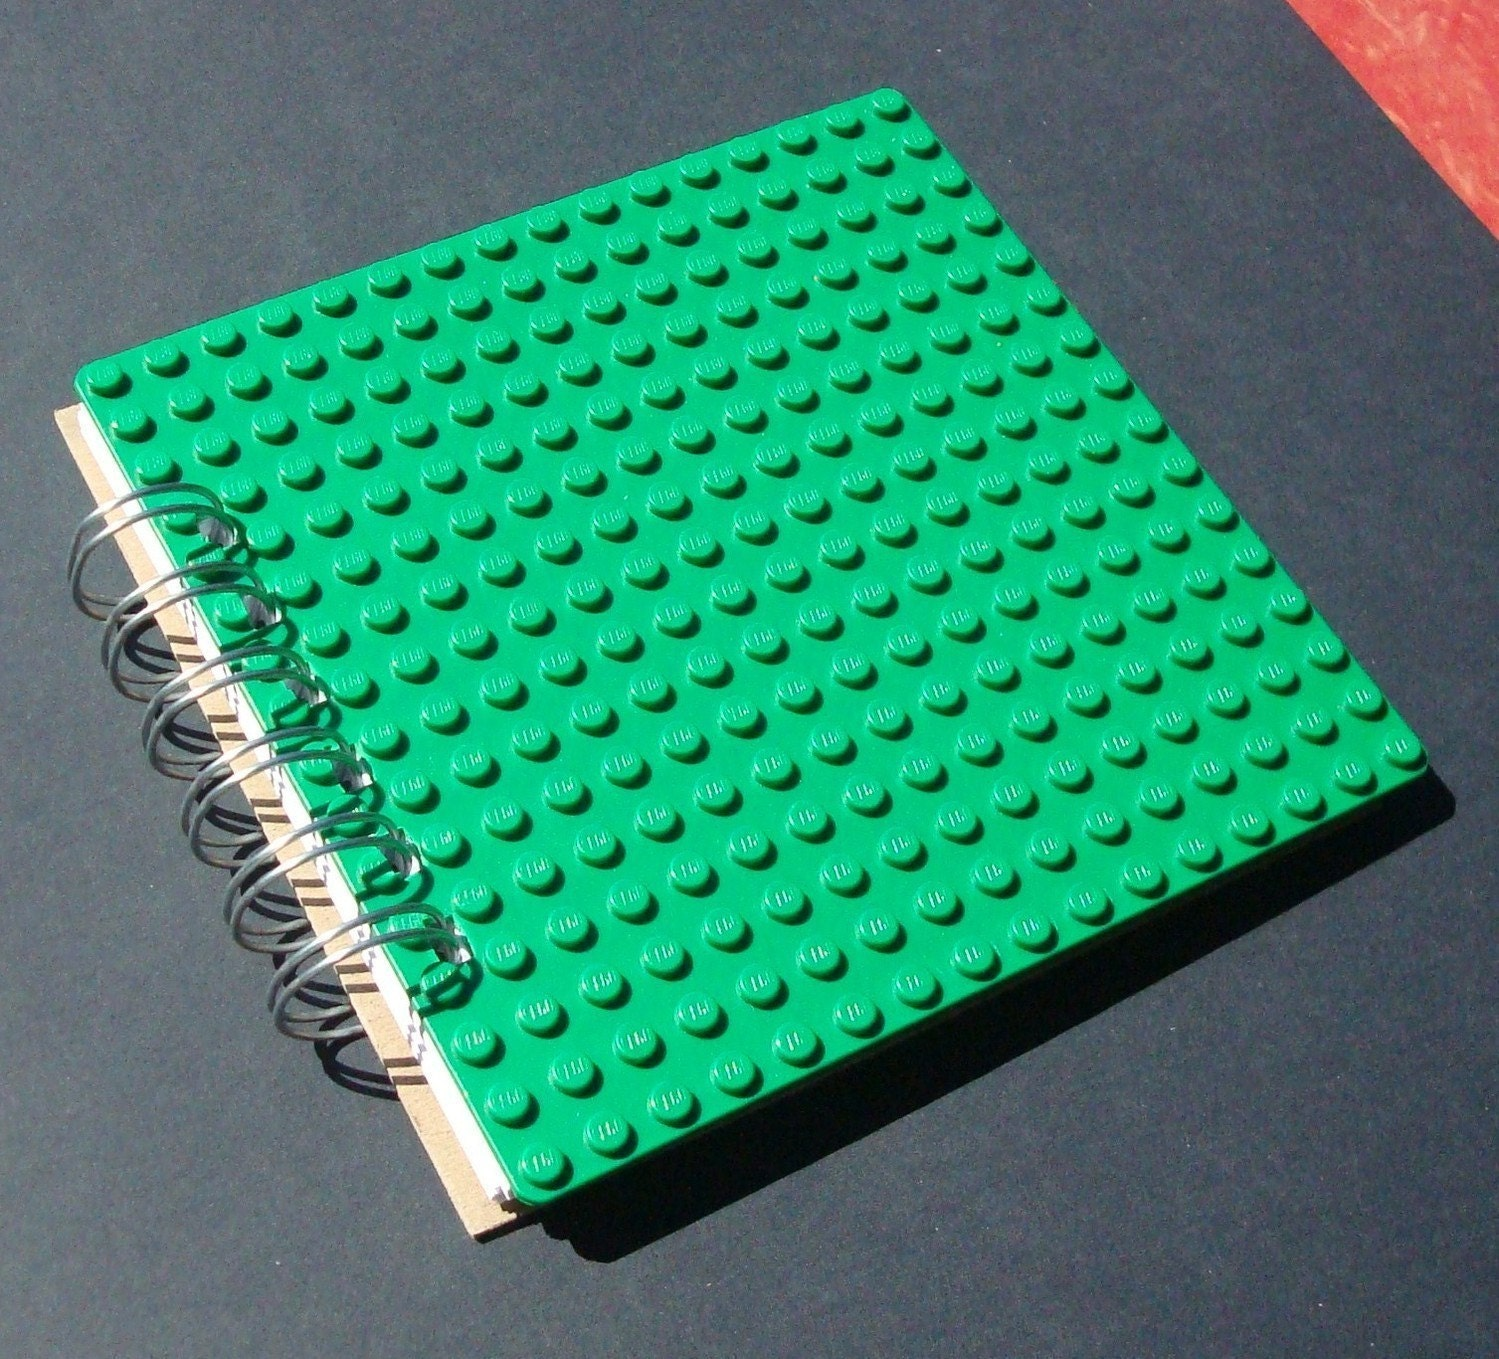 Journal spiral bound notebook made with GREEN LEGO® plate